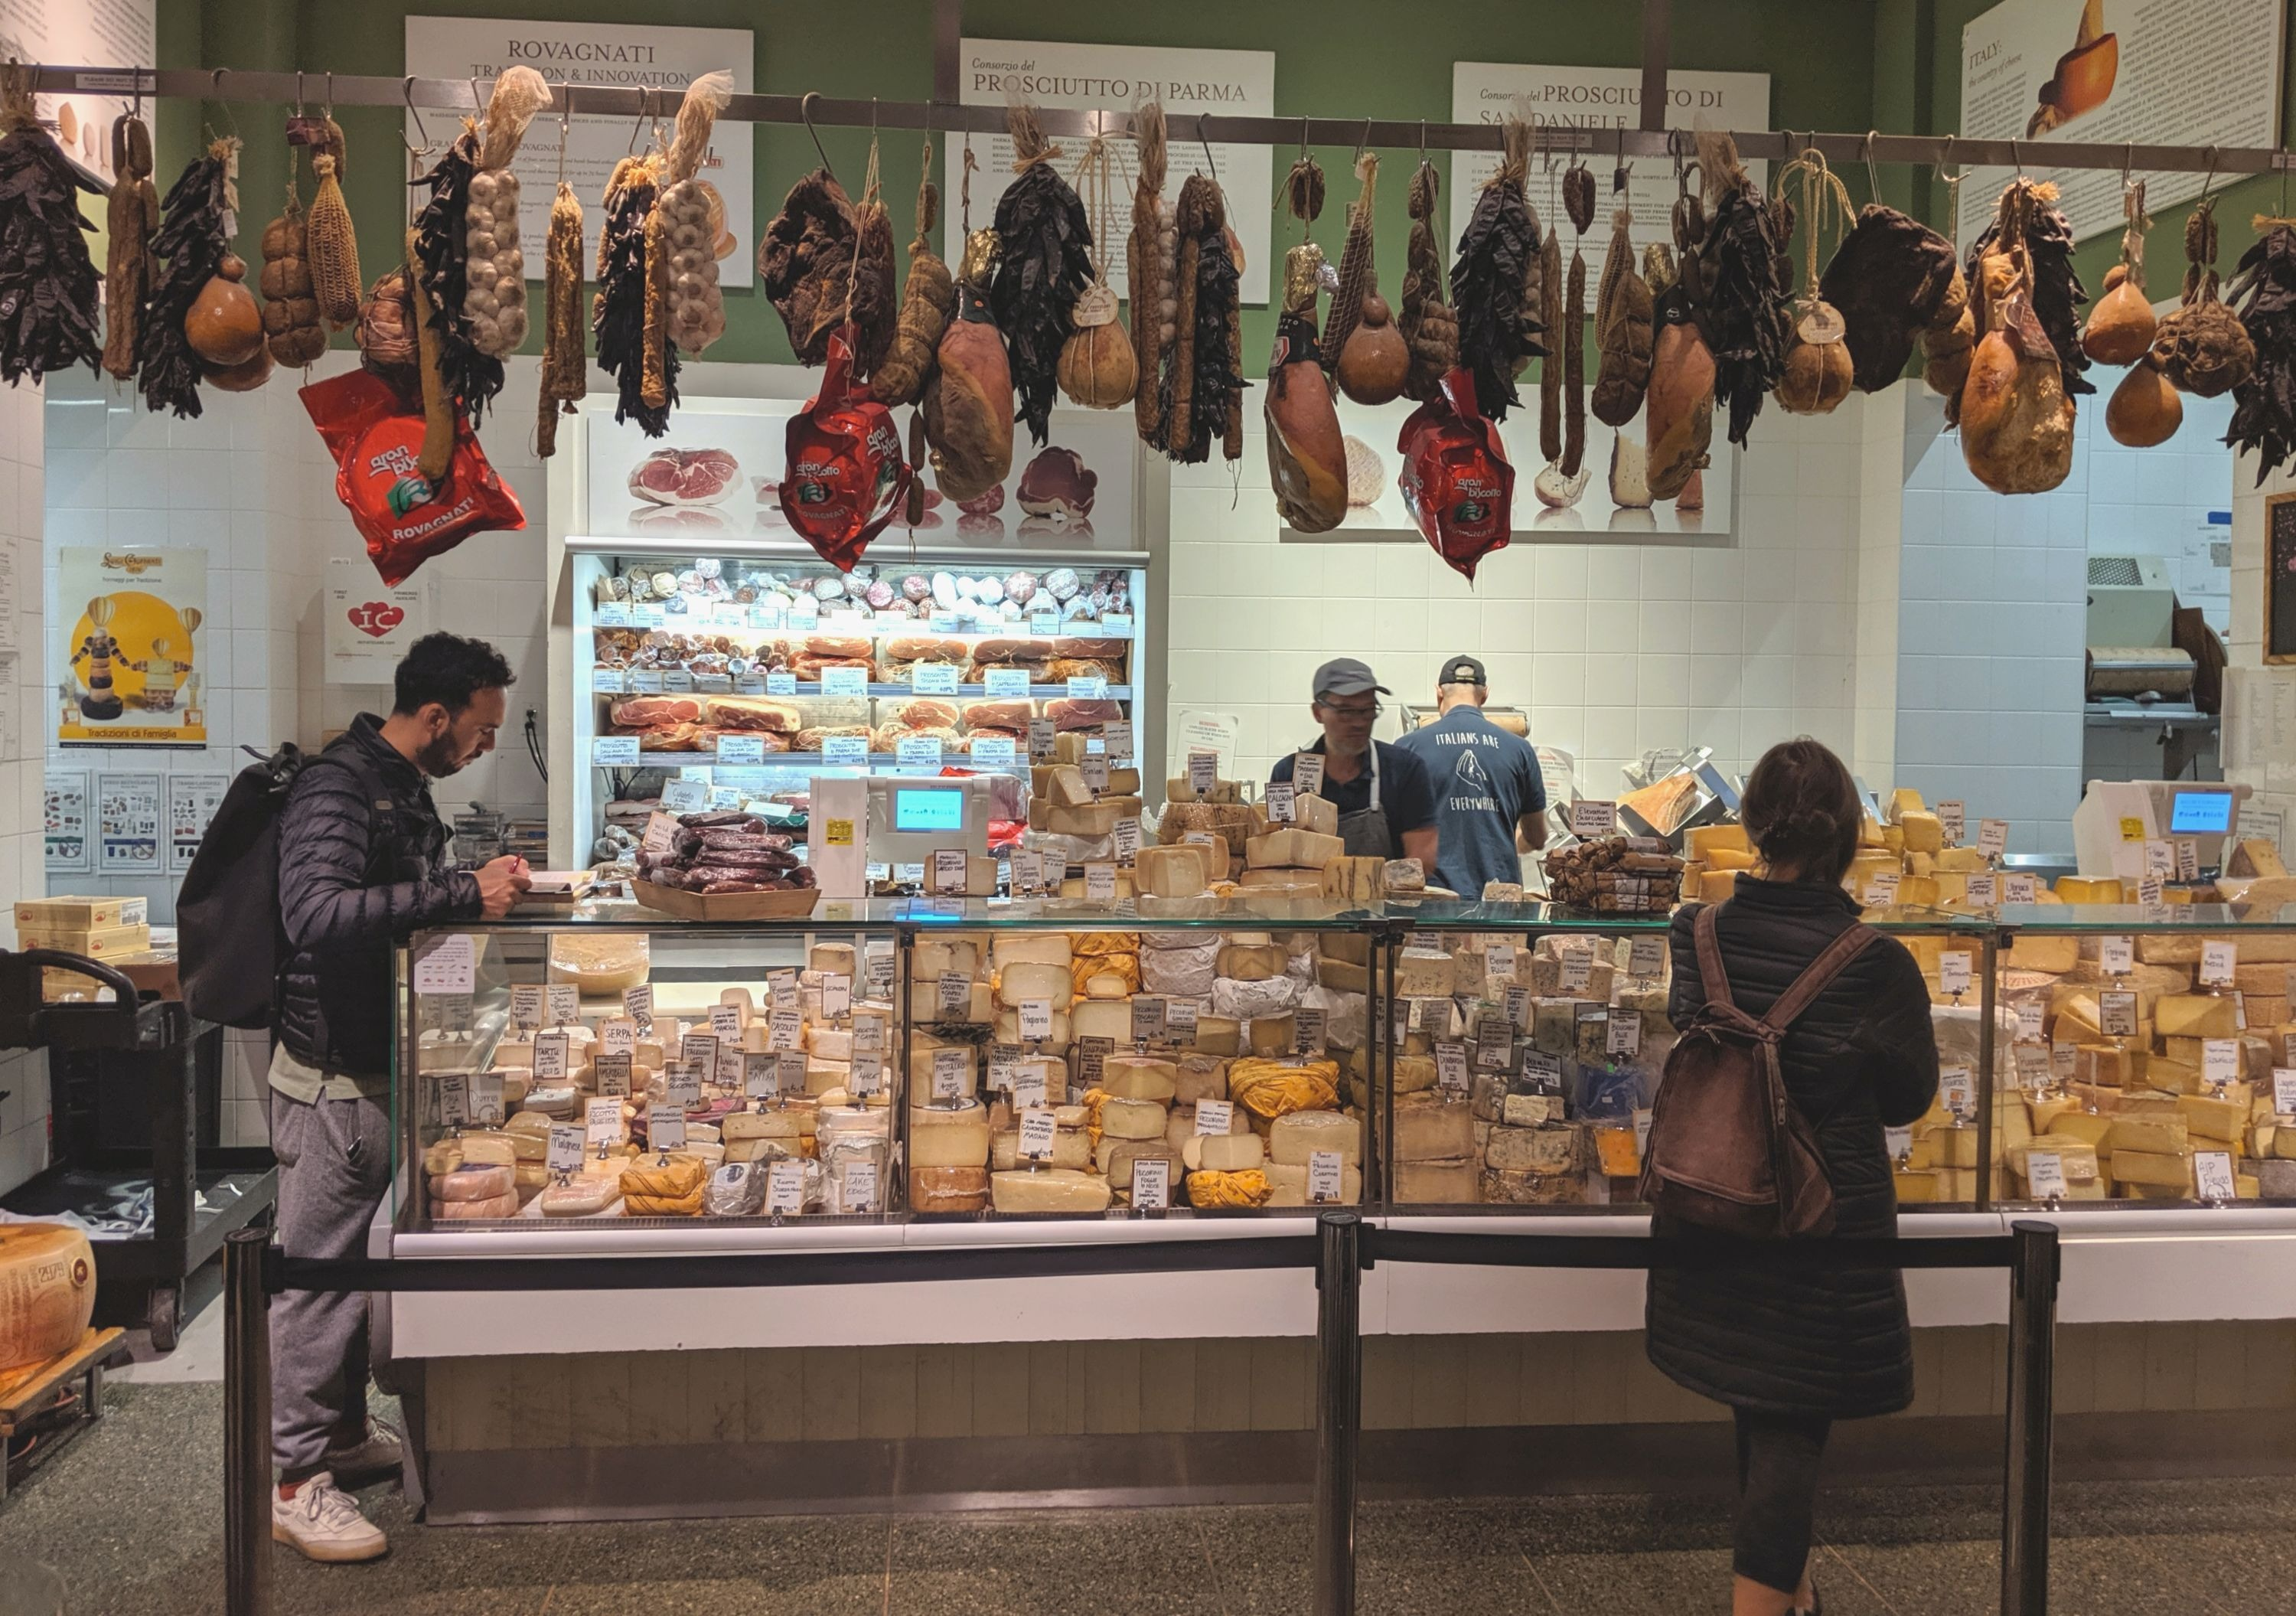 A cheese and meats counter in Eataly, NYC